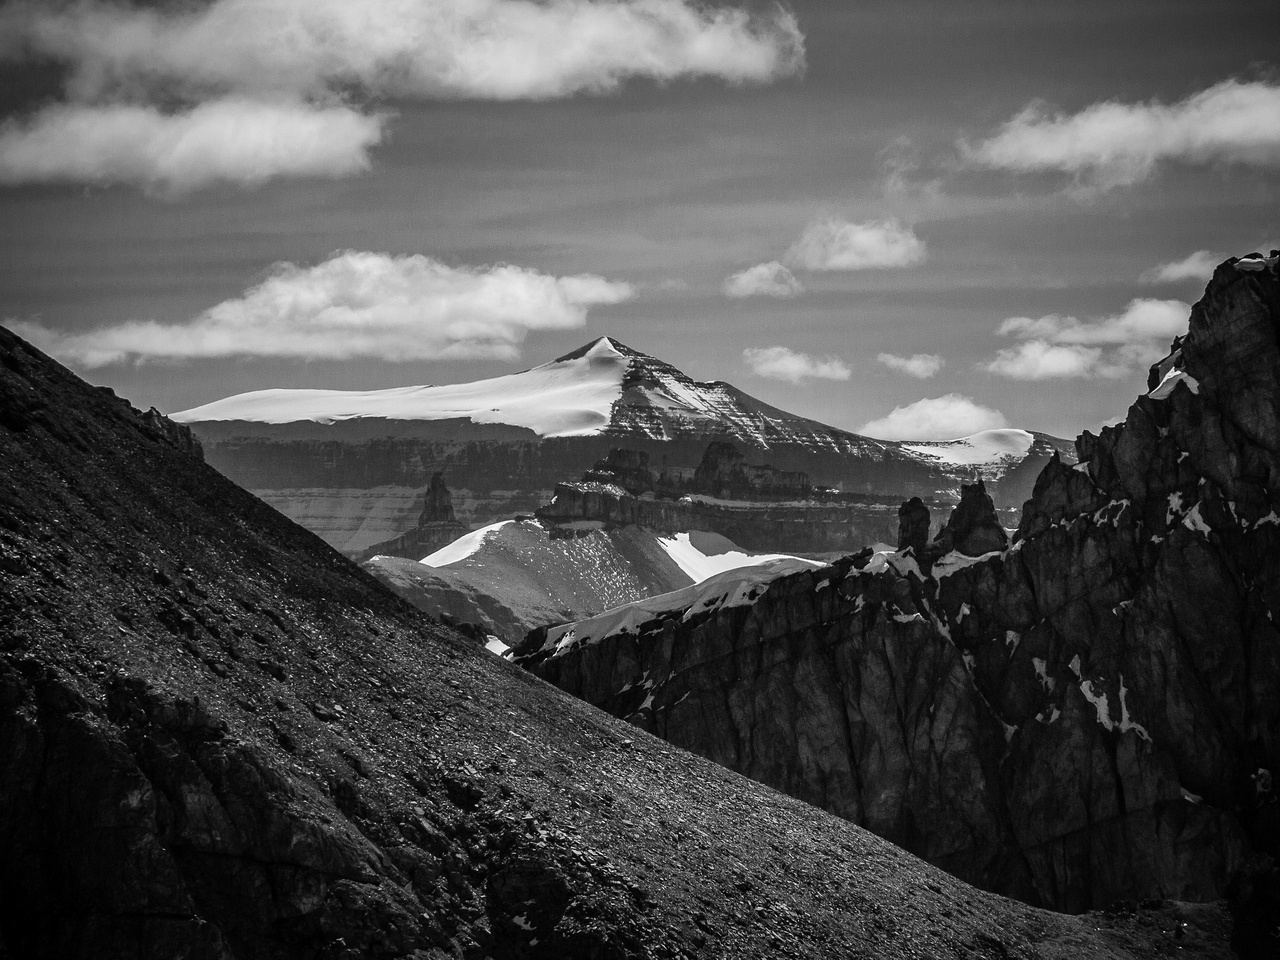 Mount Amery is another peak that was rumored to be 11,000 feet but Eric and I conclusively proved it is shy of that mark in 2012.